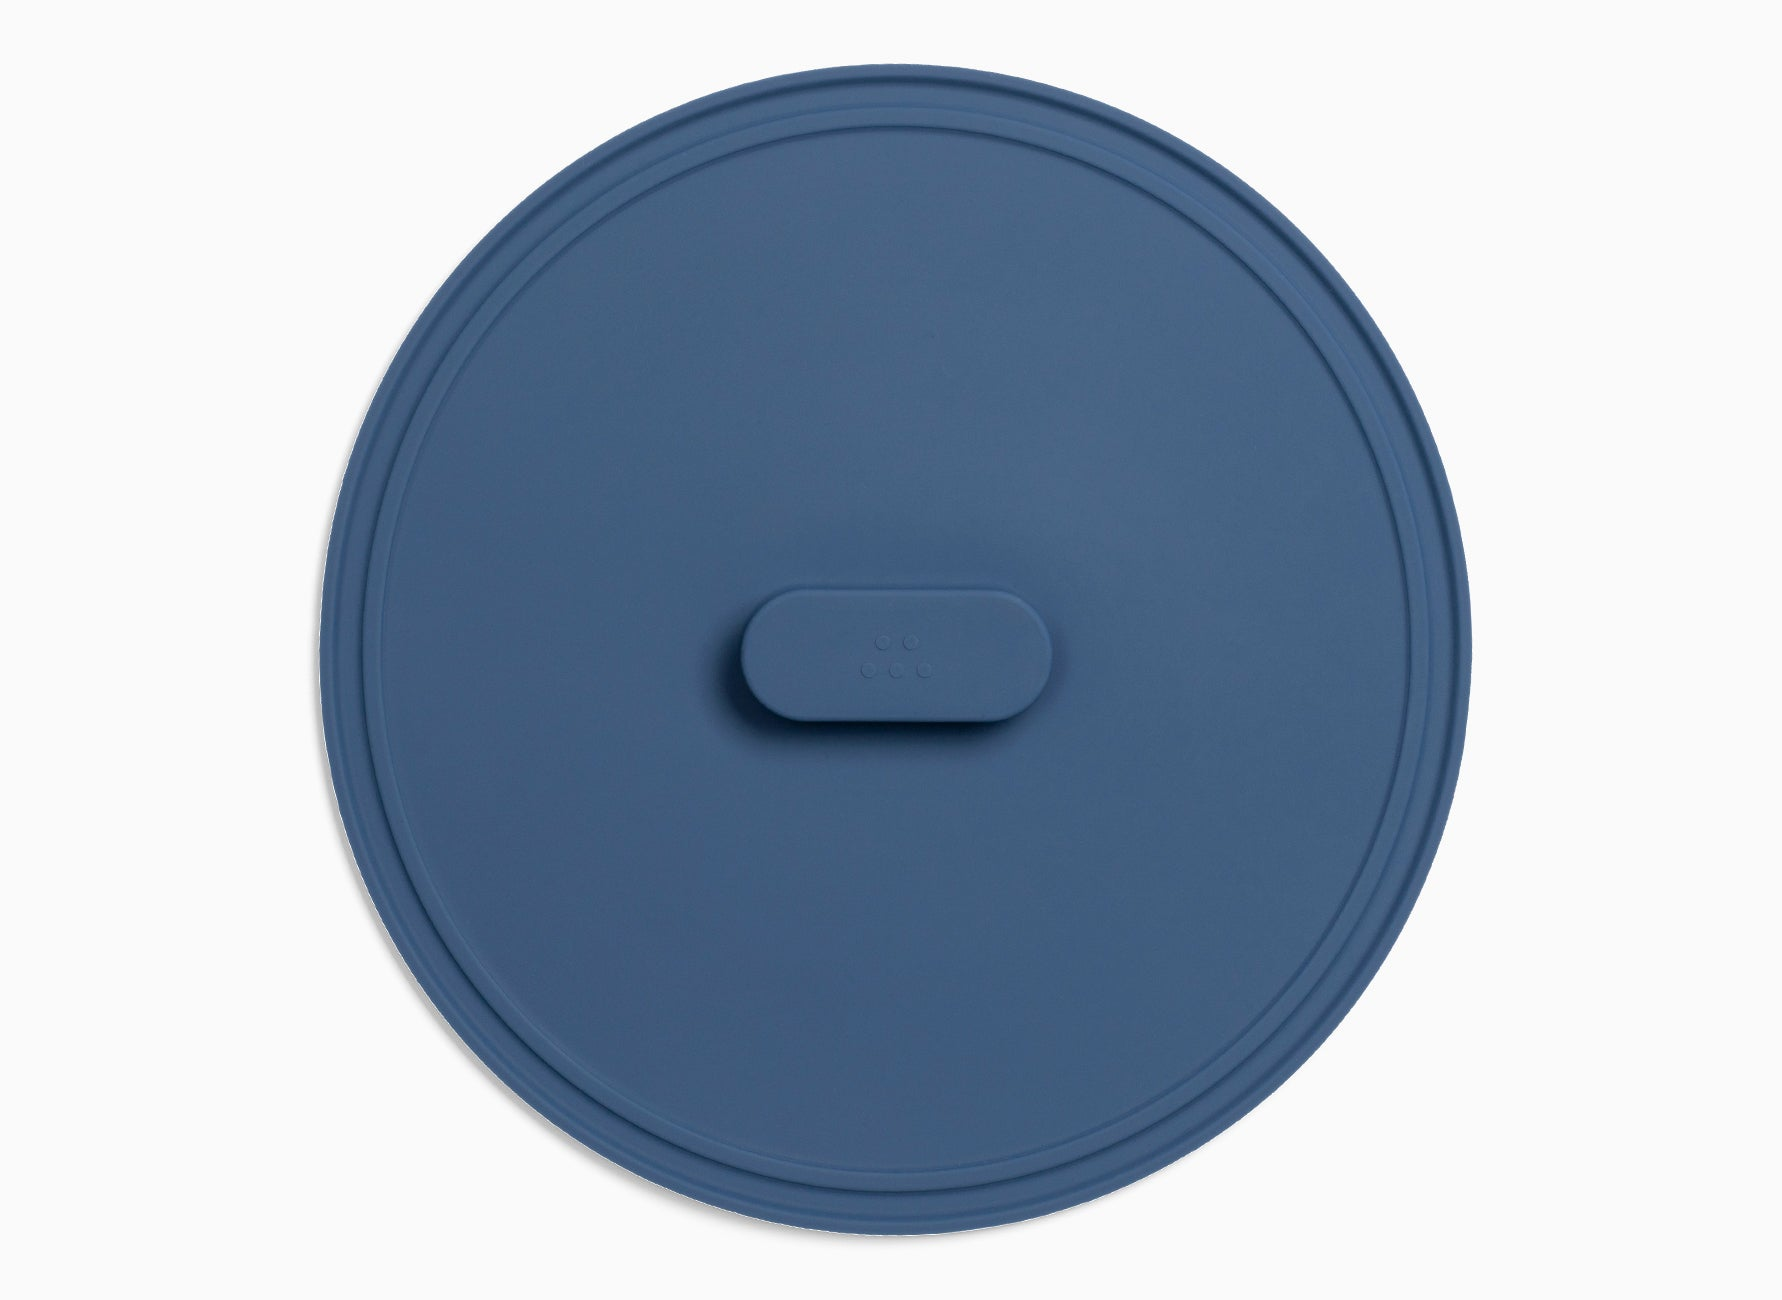 Misen universal lid in blue